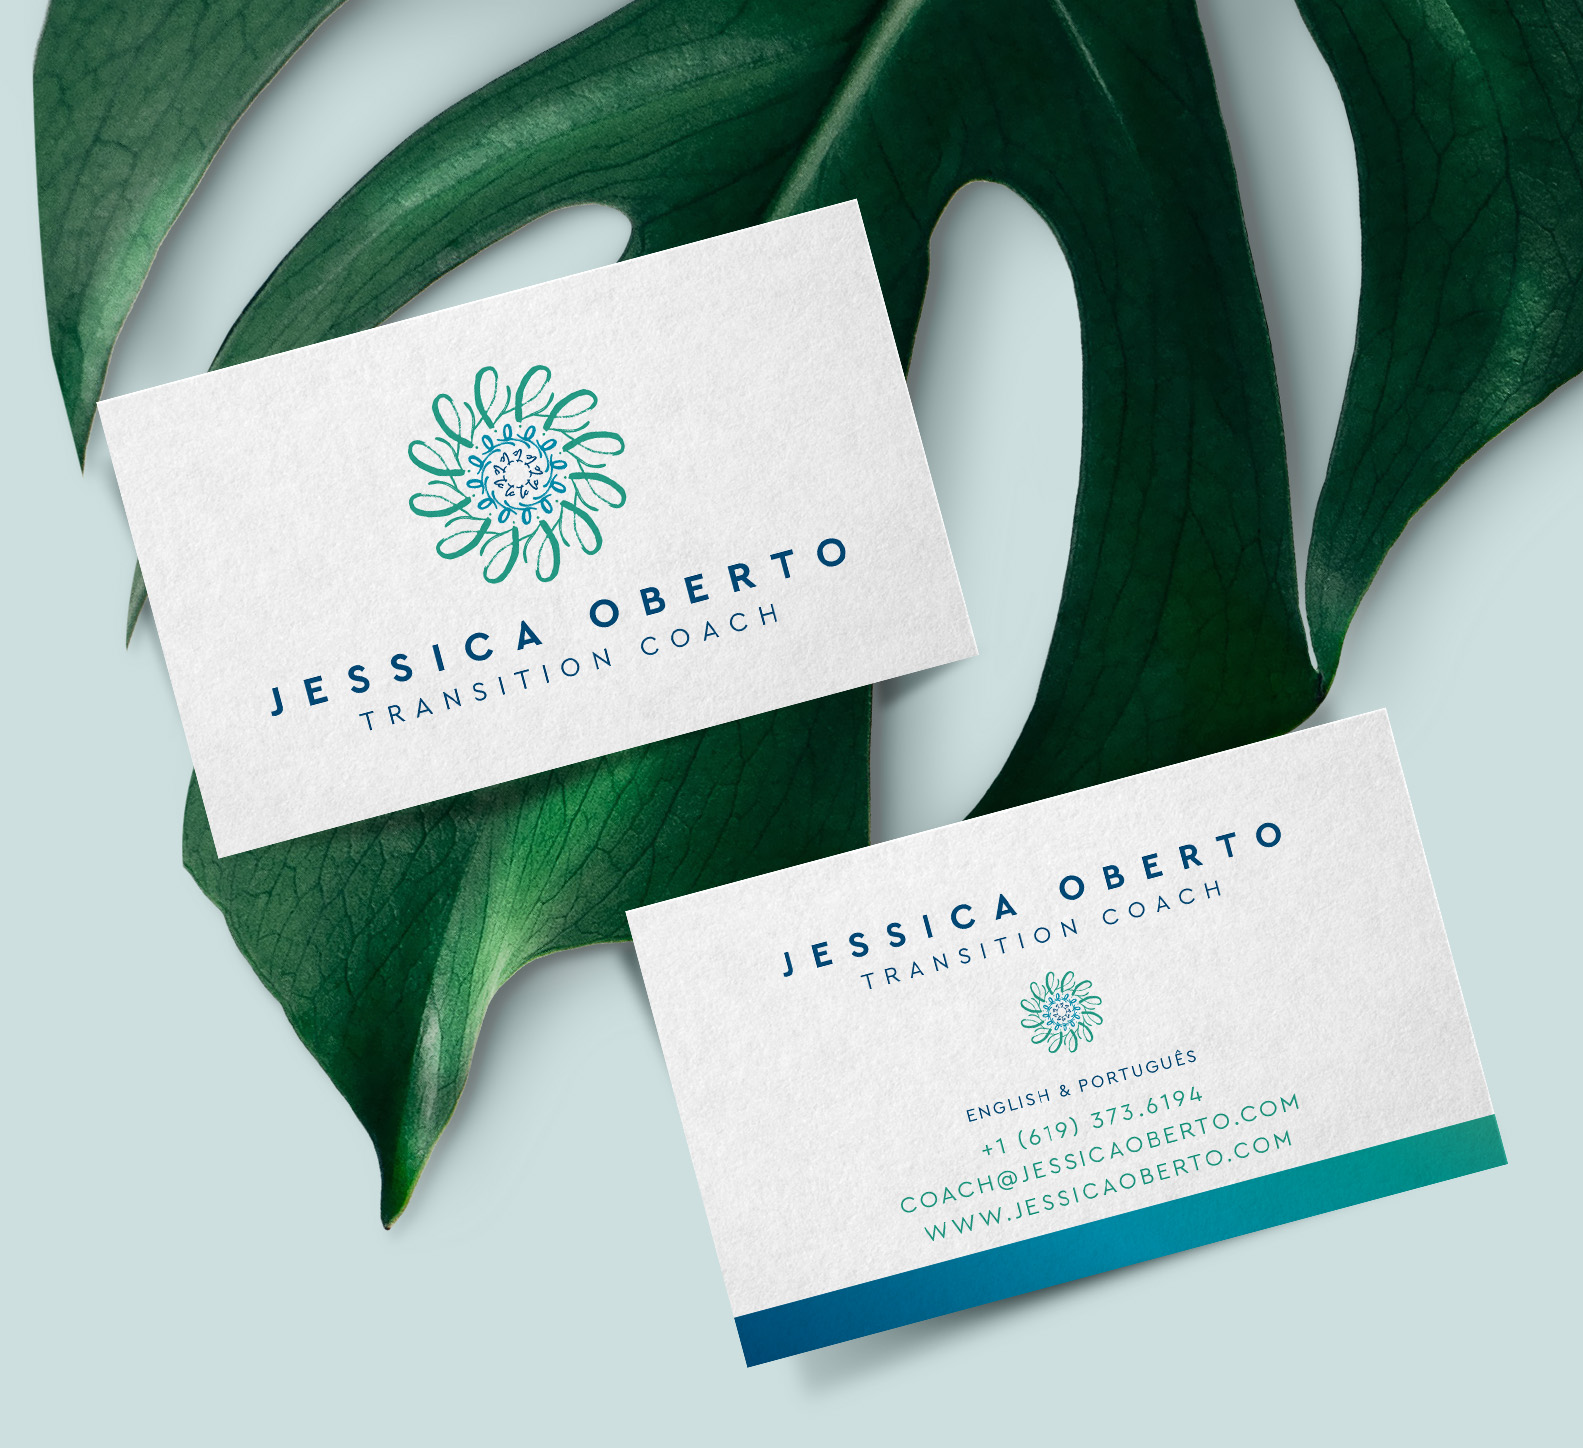 Business-Card-Jessica-Oberto.jpg